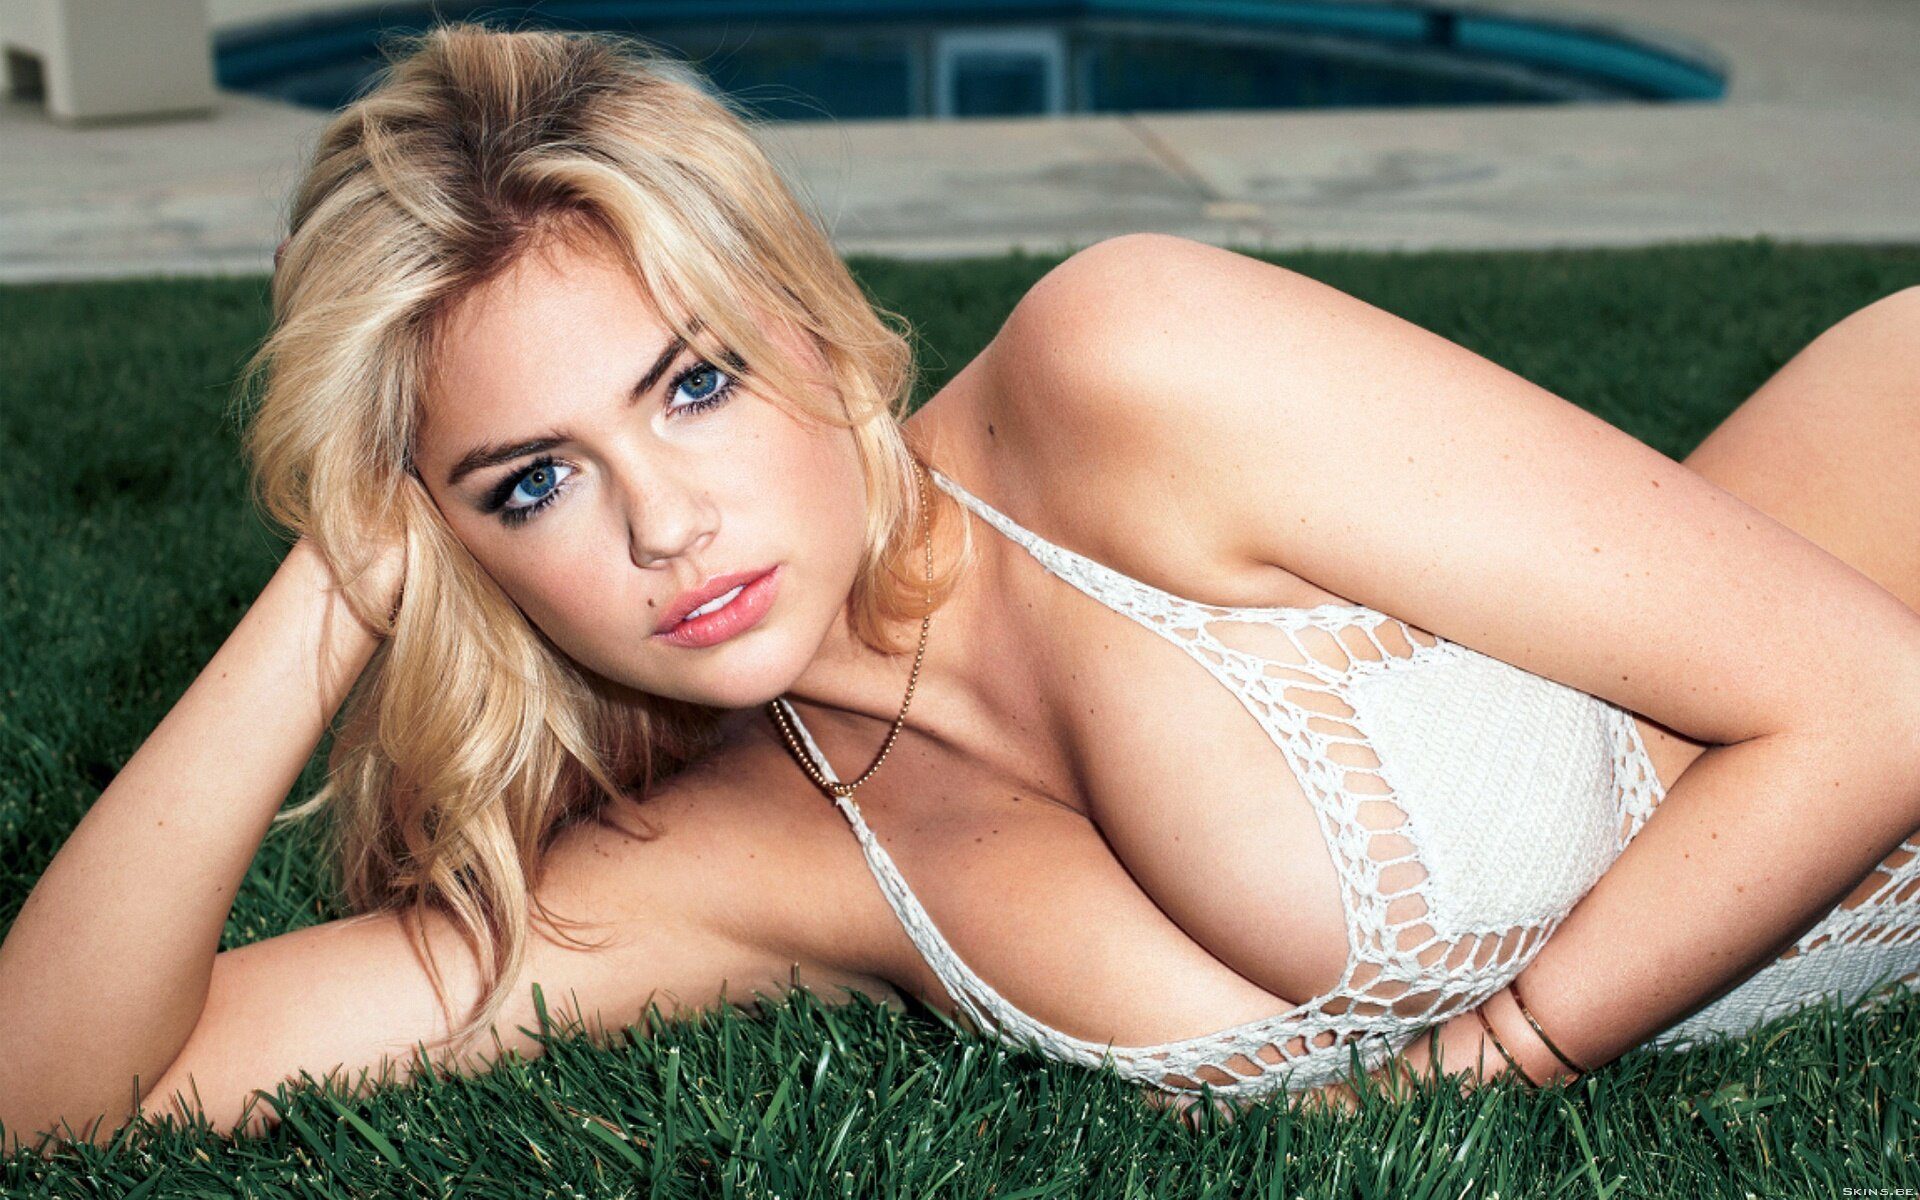 Mercedes Benz Hot Superbowl Commercial Featuring Kate Upton Criticized